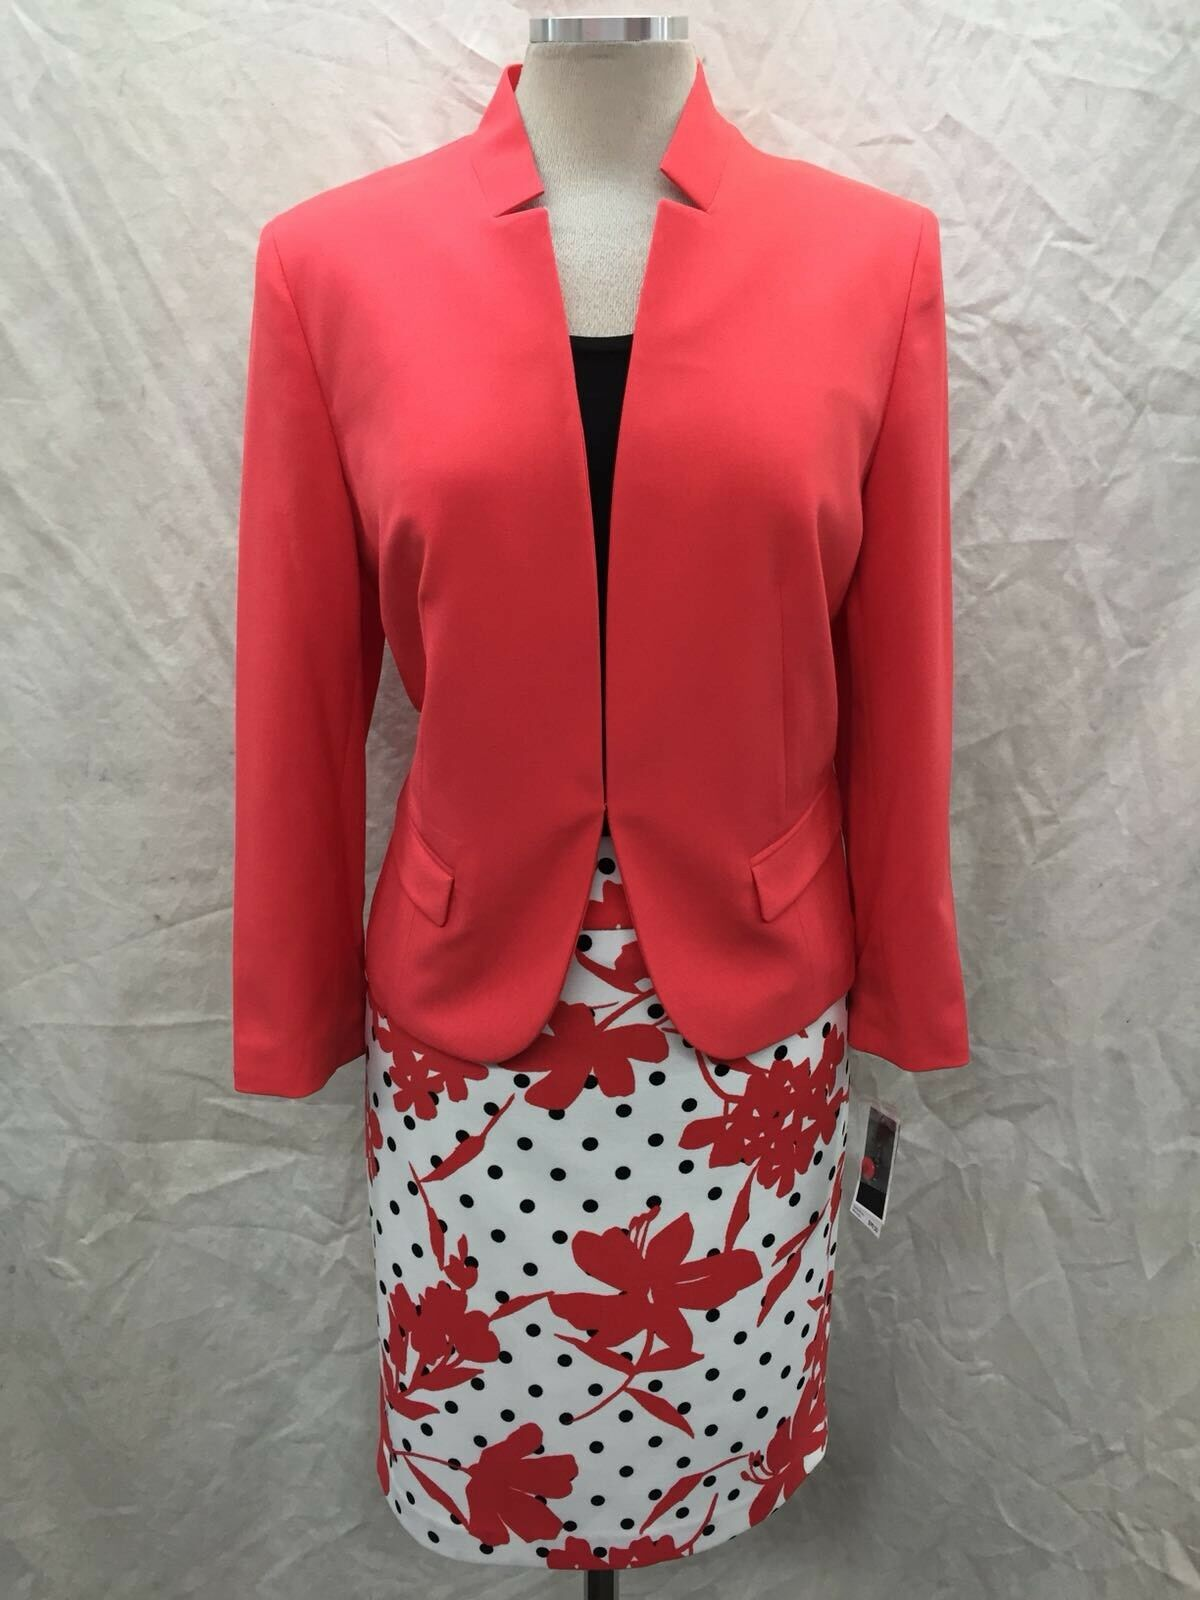 NINE WEST SKIRT SUIT NEW WITH TAG SIZE 14 RETAIL 240 LINED TANK NOT INCLUDED